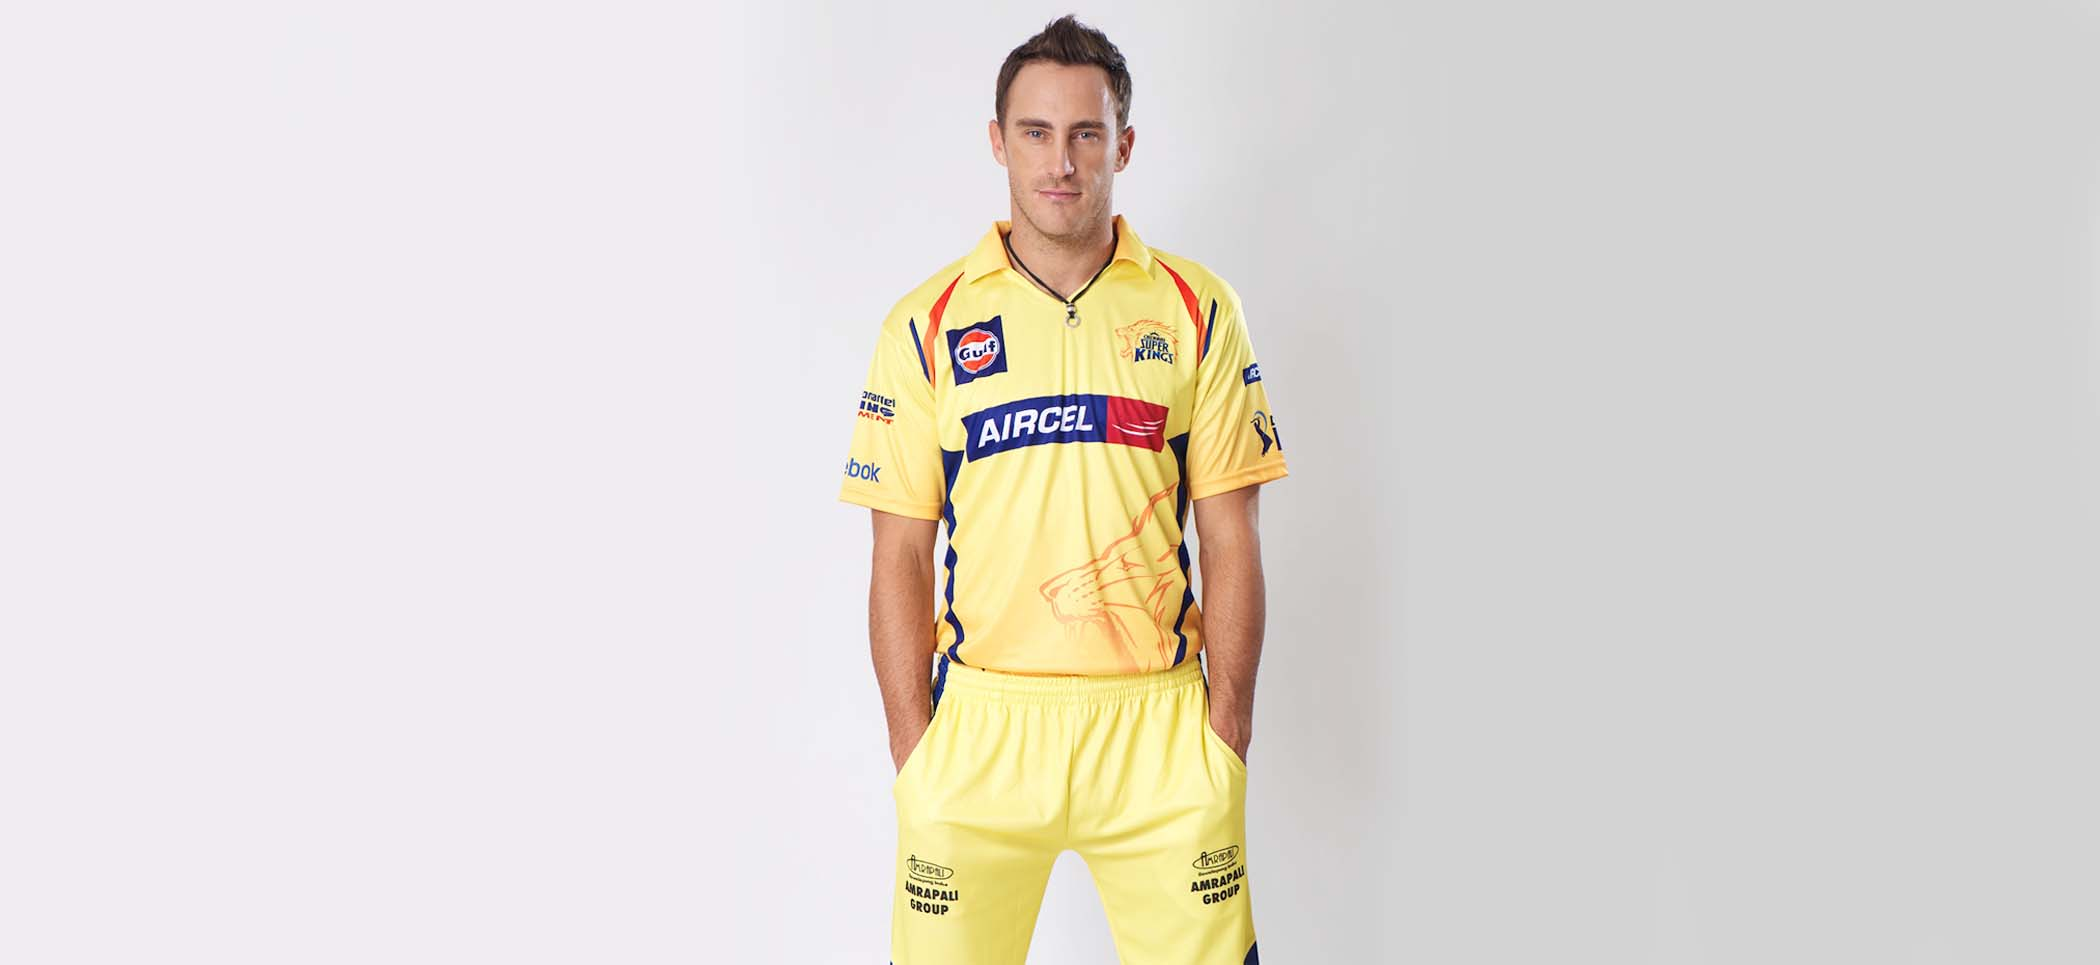 Faf du plessis yellow dress photos